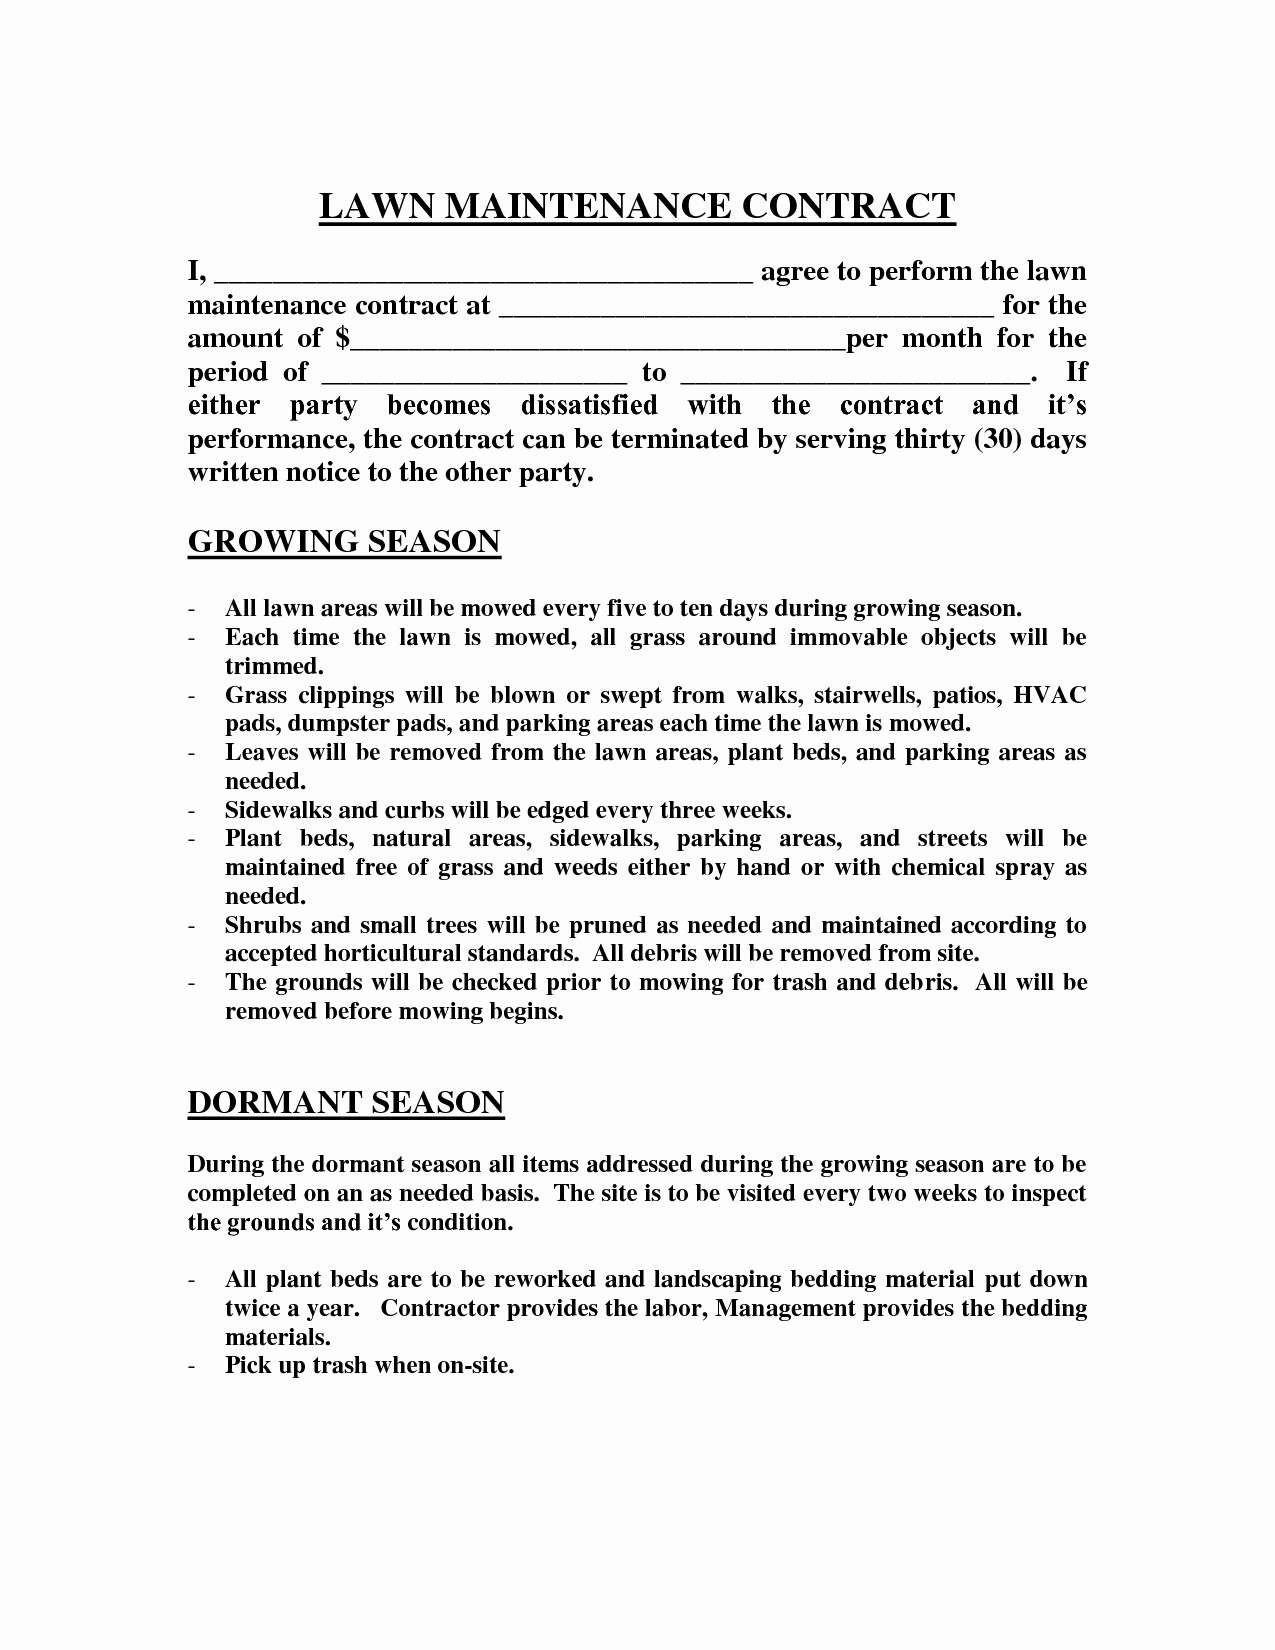 Residential Snow Removal Contract Template Awesome Lawn Maintenance Contract Images Lawn Maintenance Contract Agreement Real State